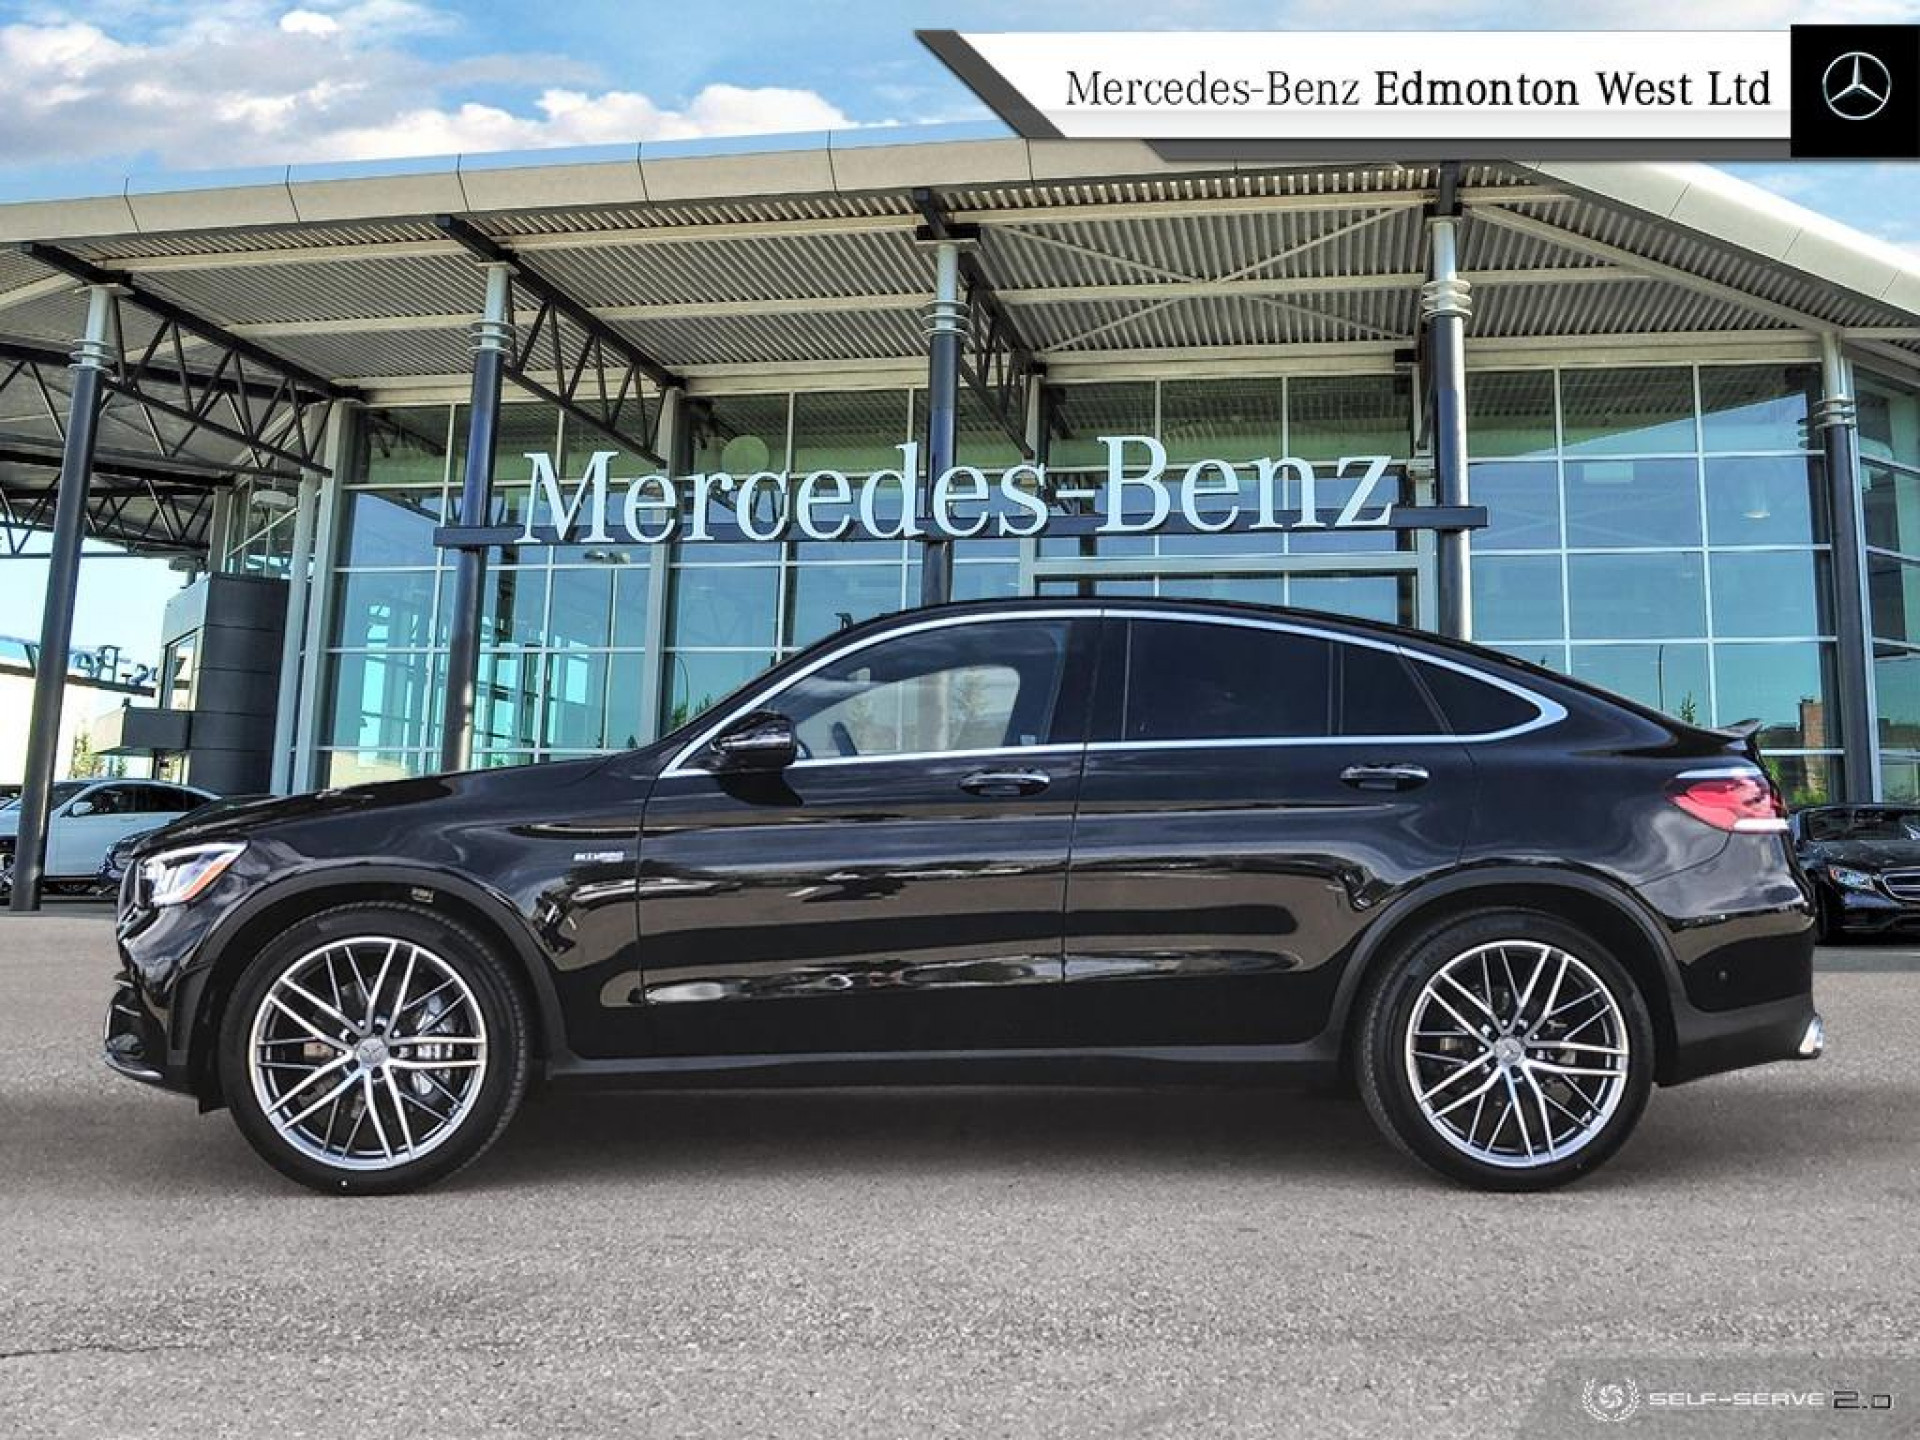 New 2020 Mercedes Benz GLC-Class AMG 43 4MATIC Coupe